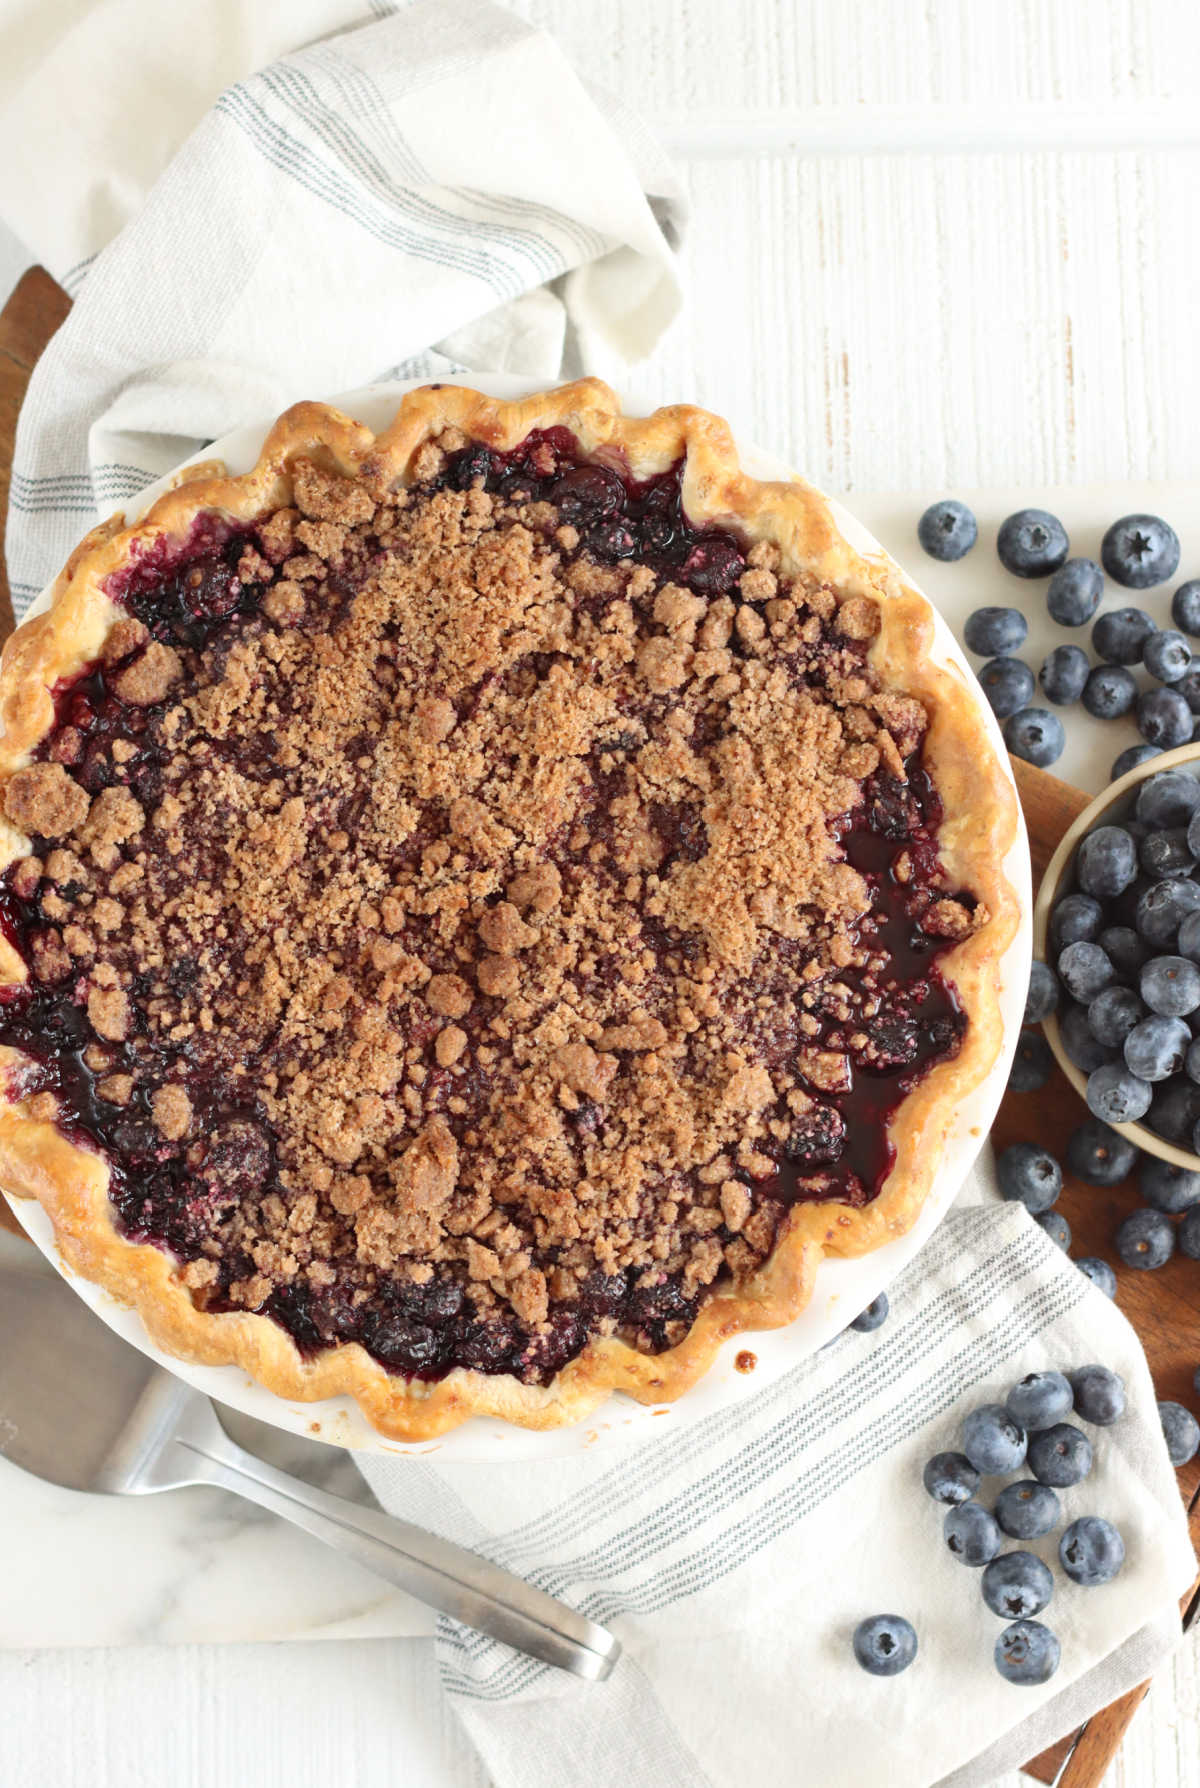 Blueberry pie with crumb topping on cutting board, kitchen towel, metal pie server, fresh blueberries.